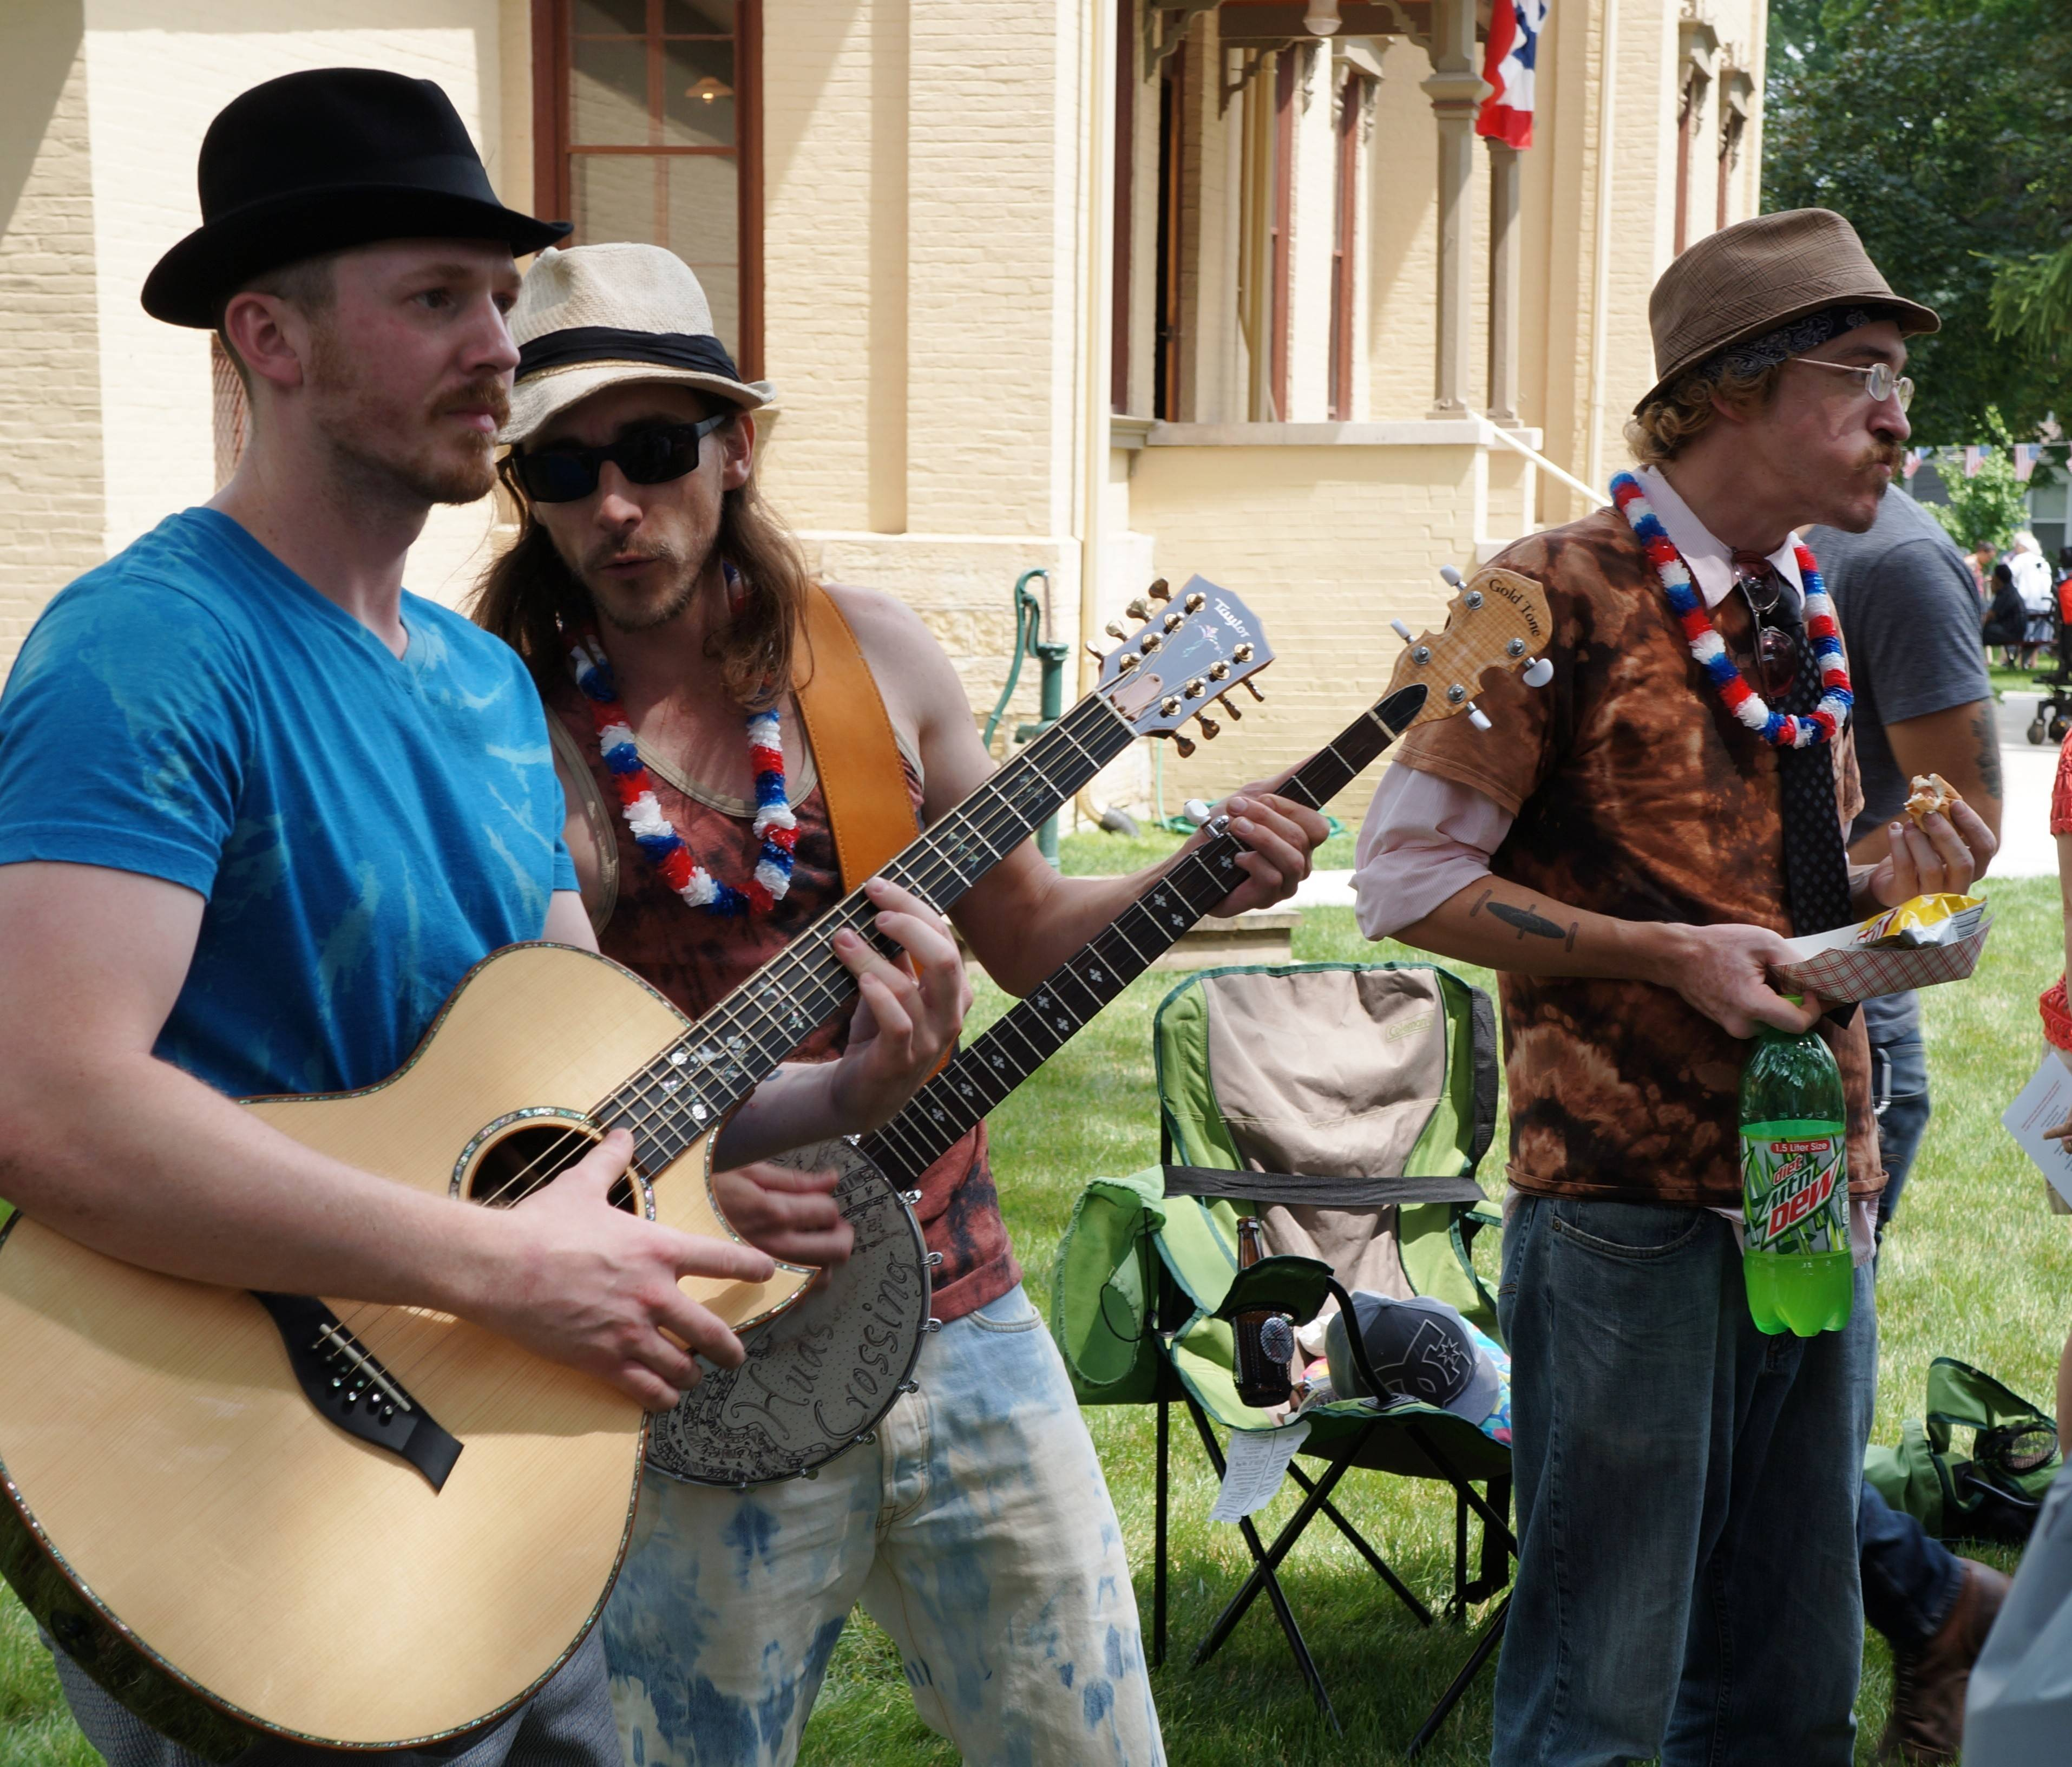 Nate DeMont, Mike Brolin and Rob Gryder of Hudson Crossing perform at the Tanner House last Fourth of July. The group will play at the opening day of the historic museum on Sunday, May 11.